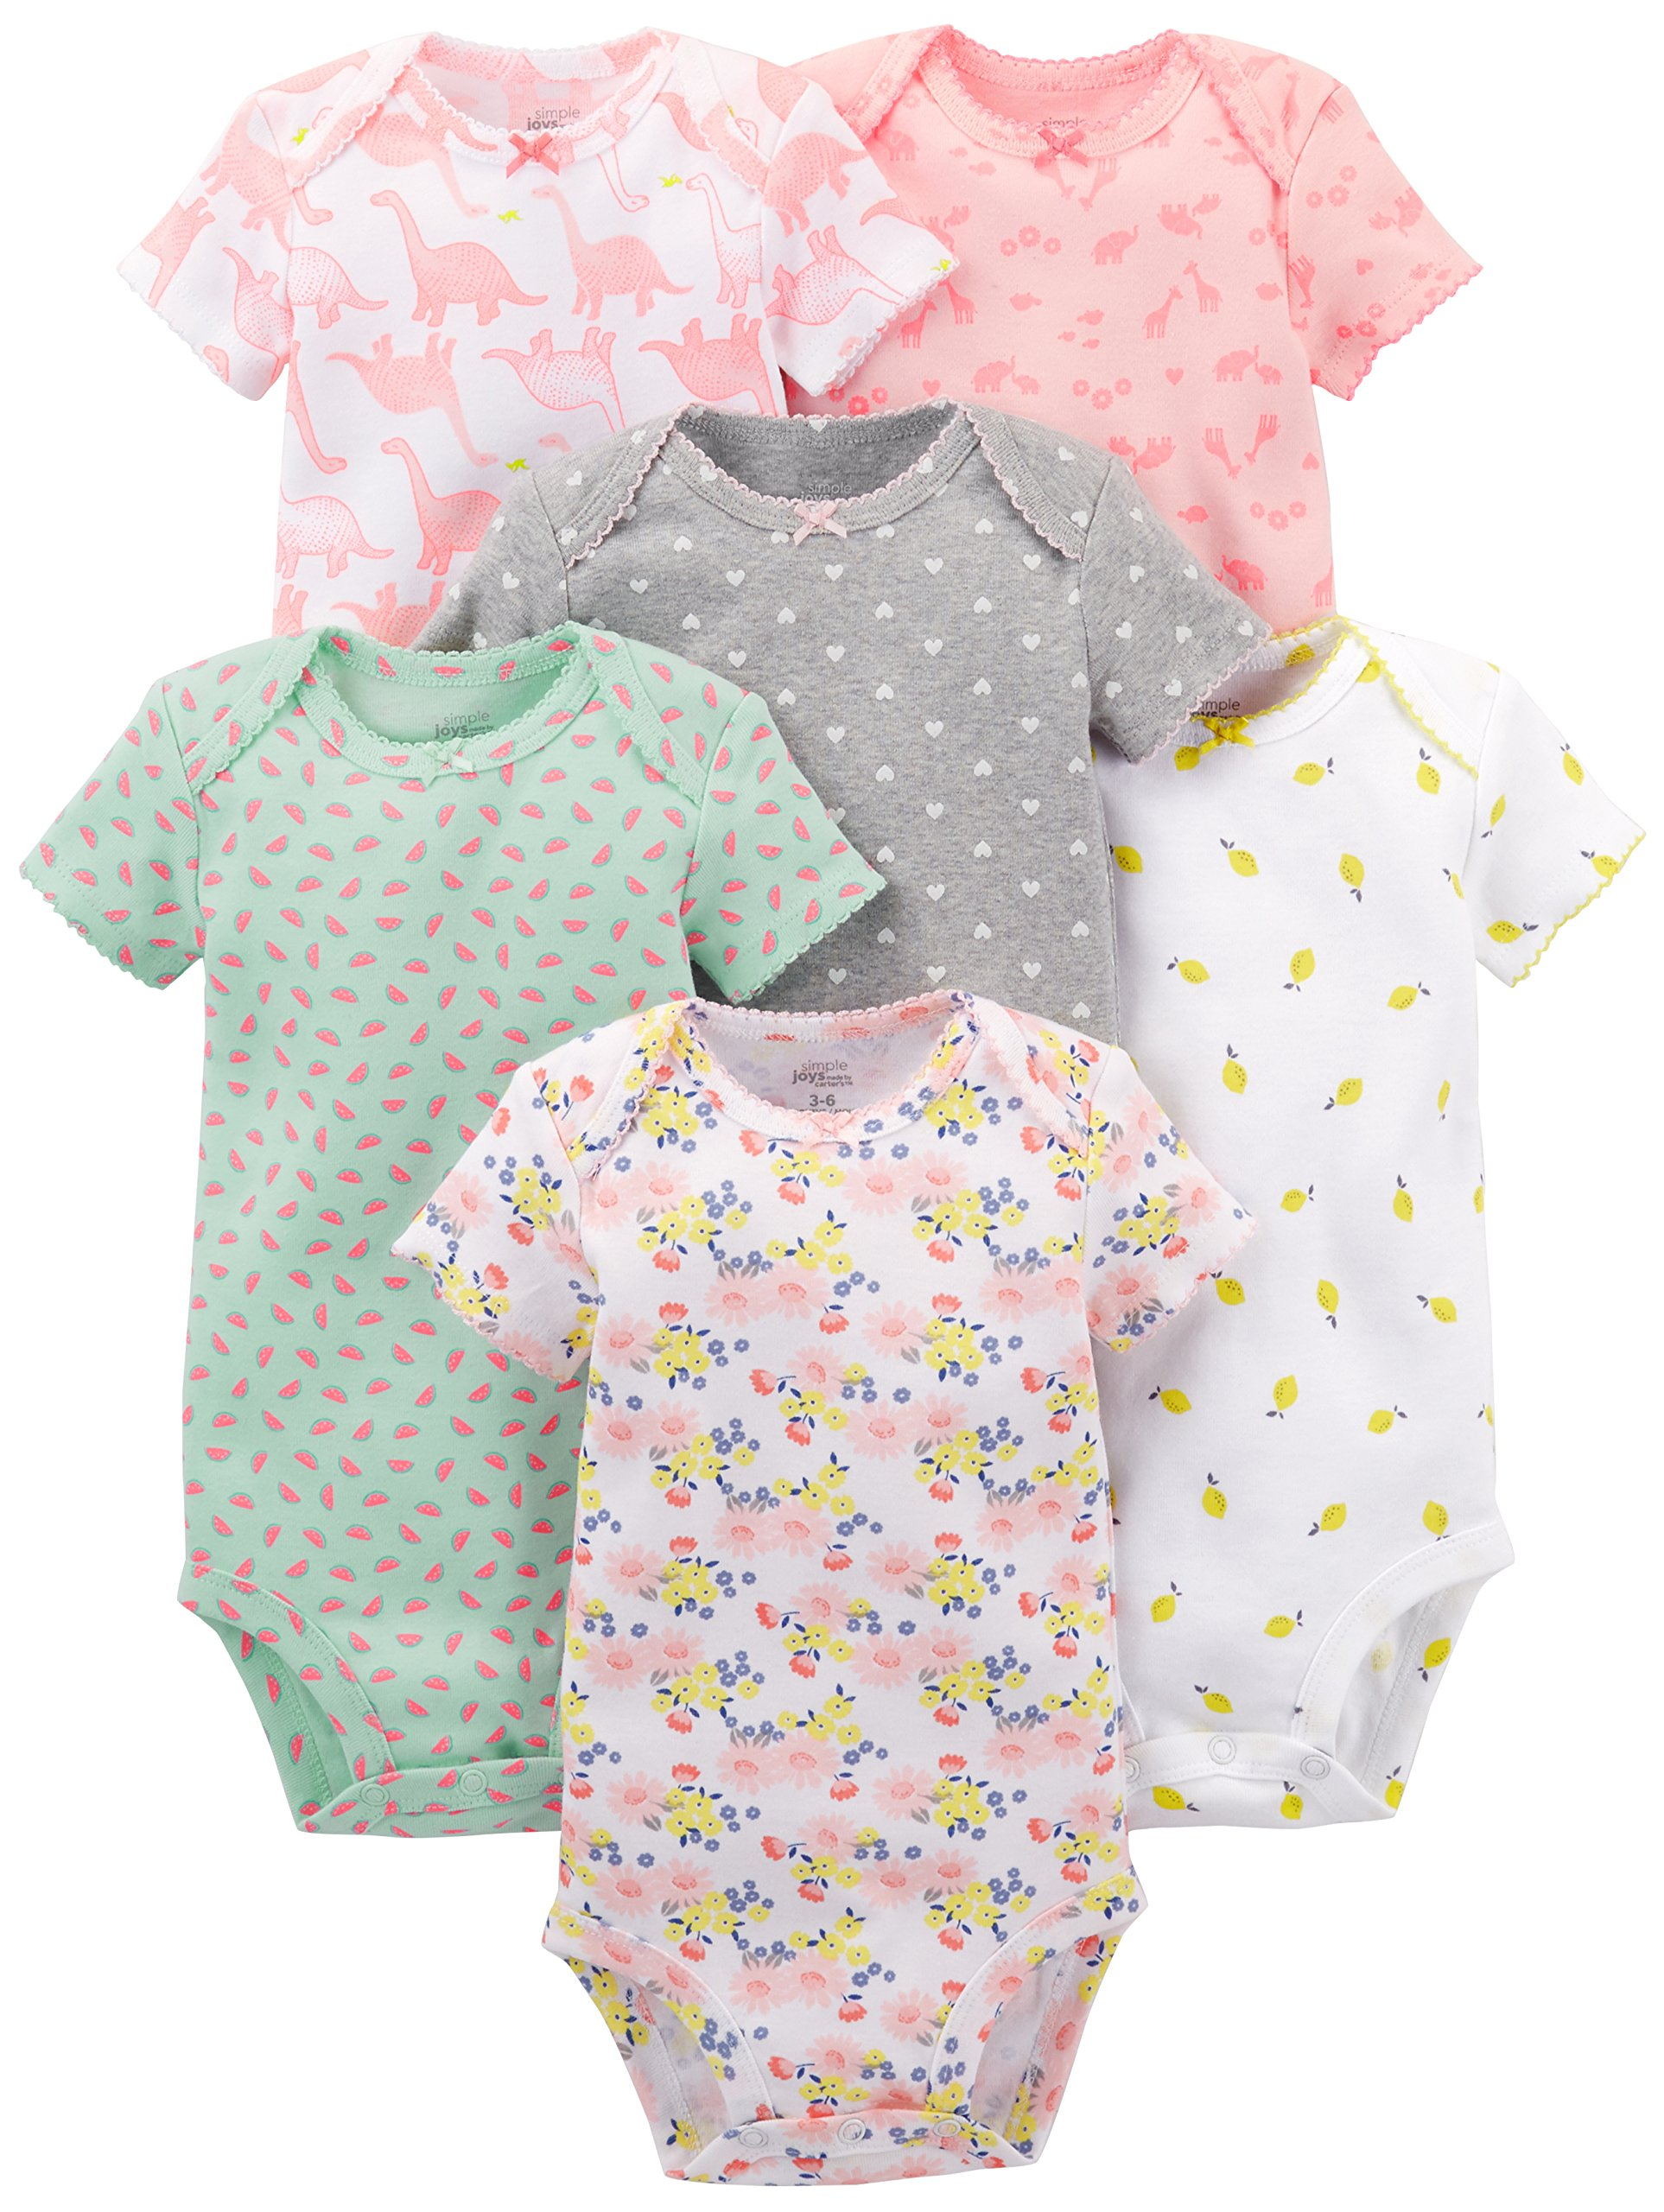 Simple Joys by Carter's Baby Girls' 6-Pack Short-Sleeve Bodysuit, Pink Dino, Floral, Mint, White, Gray, 6-9 Months by Simple Joys by Carter's